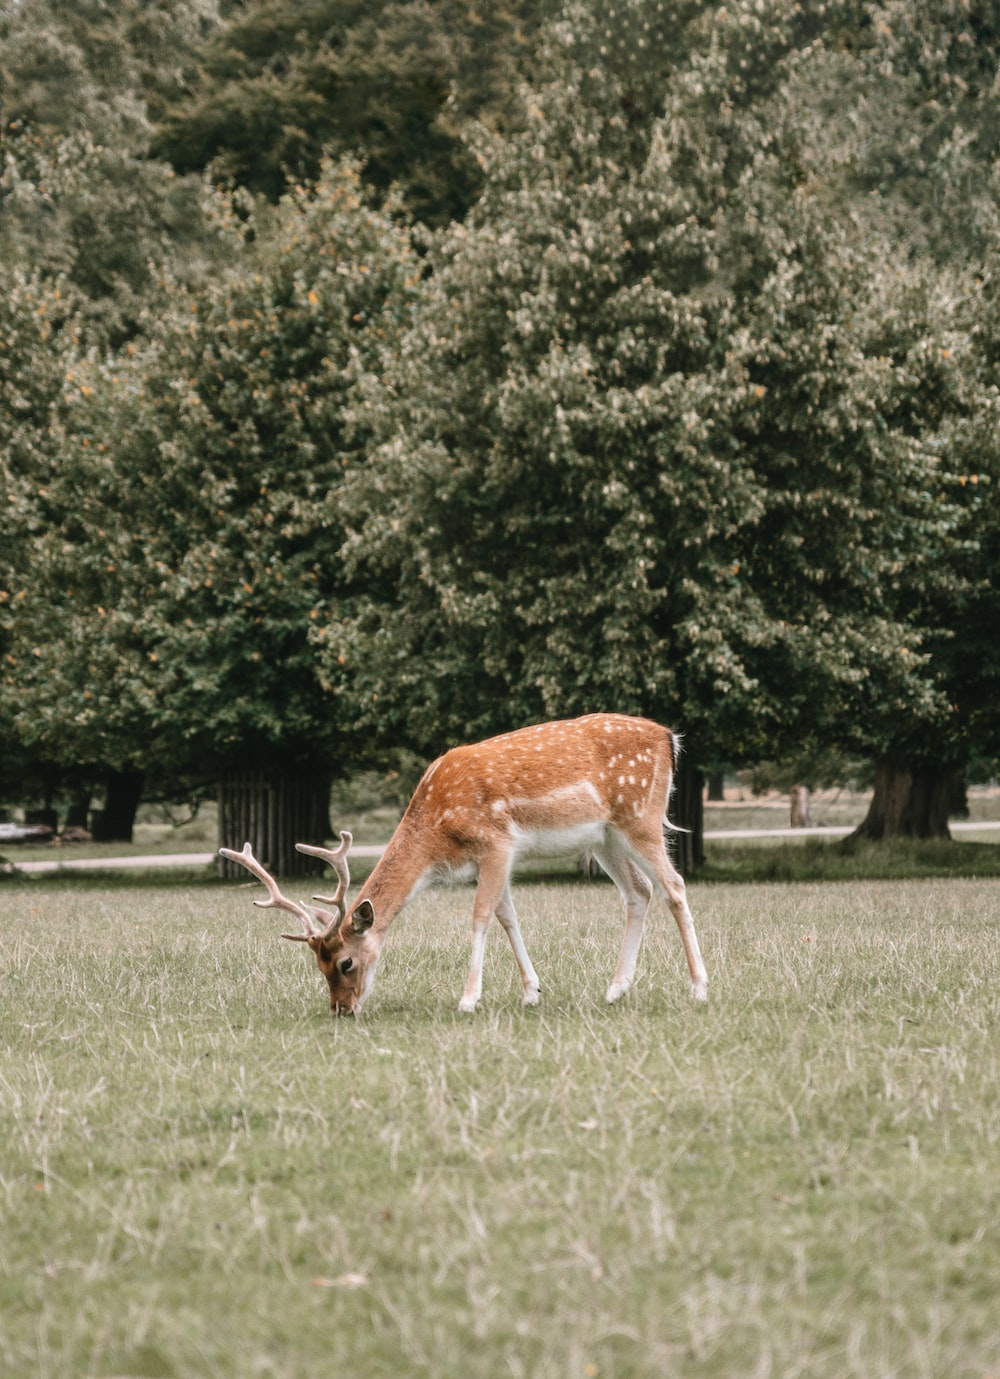 brown deer on green grass field during daytime